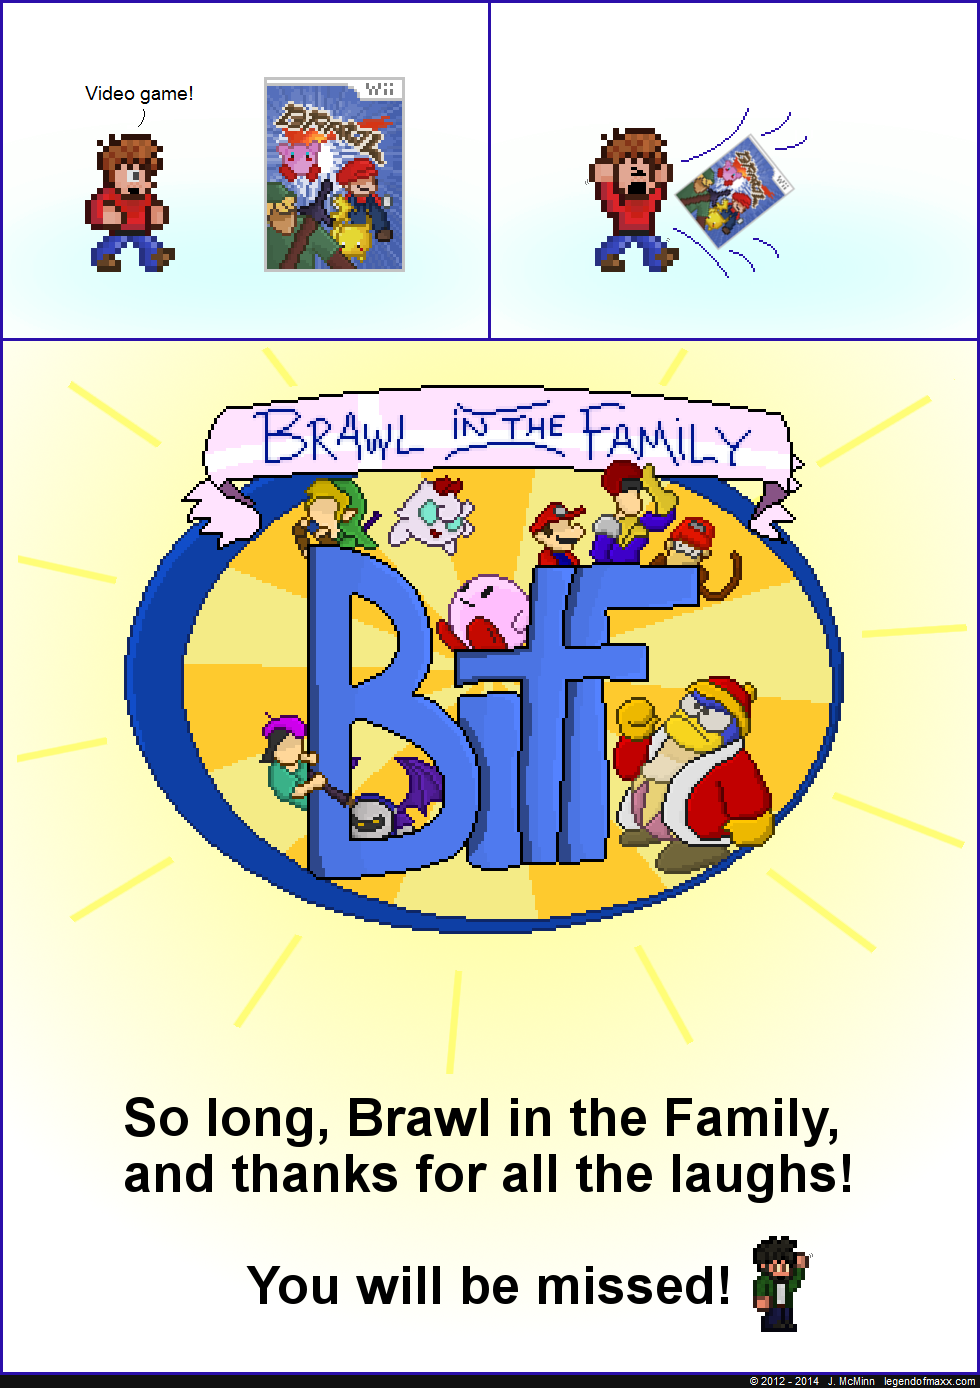 Farewell, Brawl in the Family!